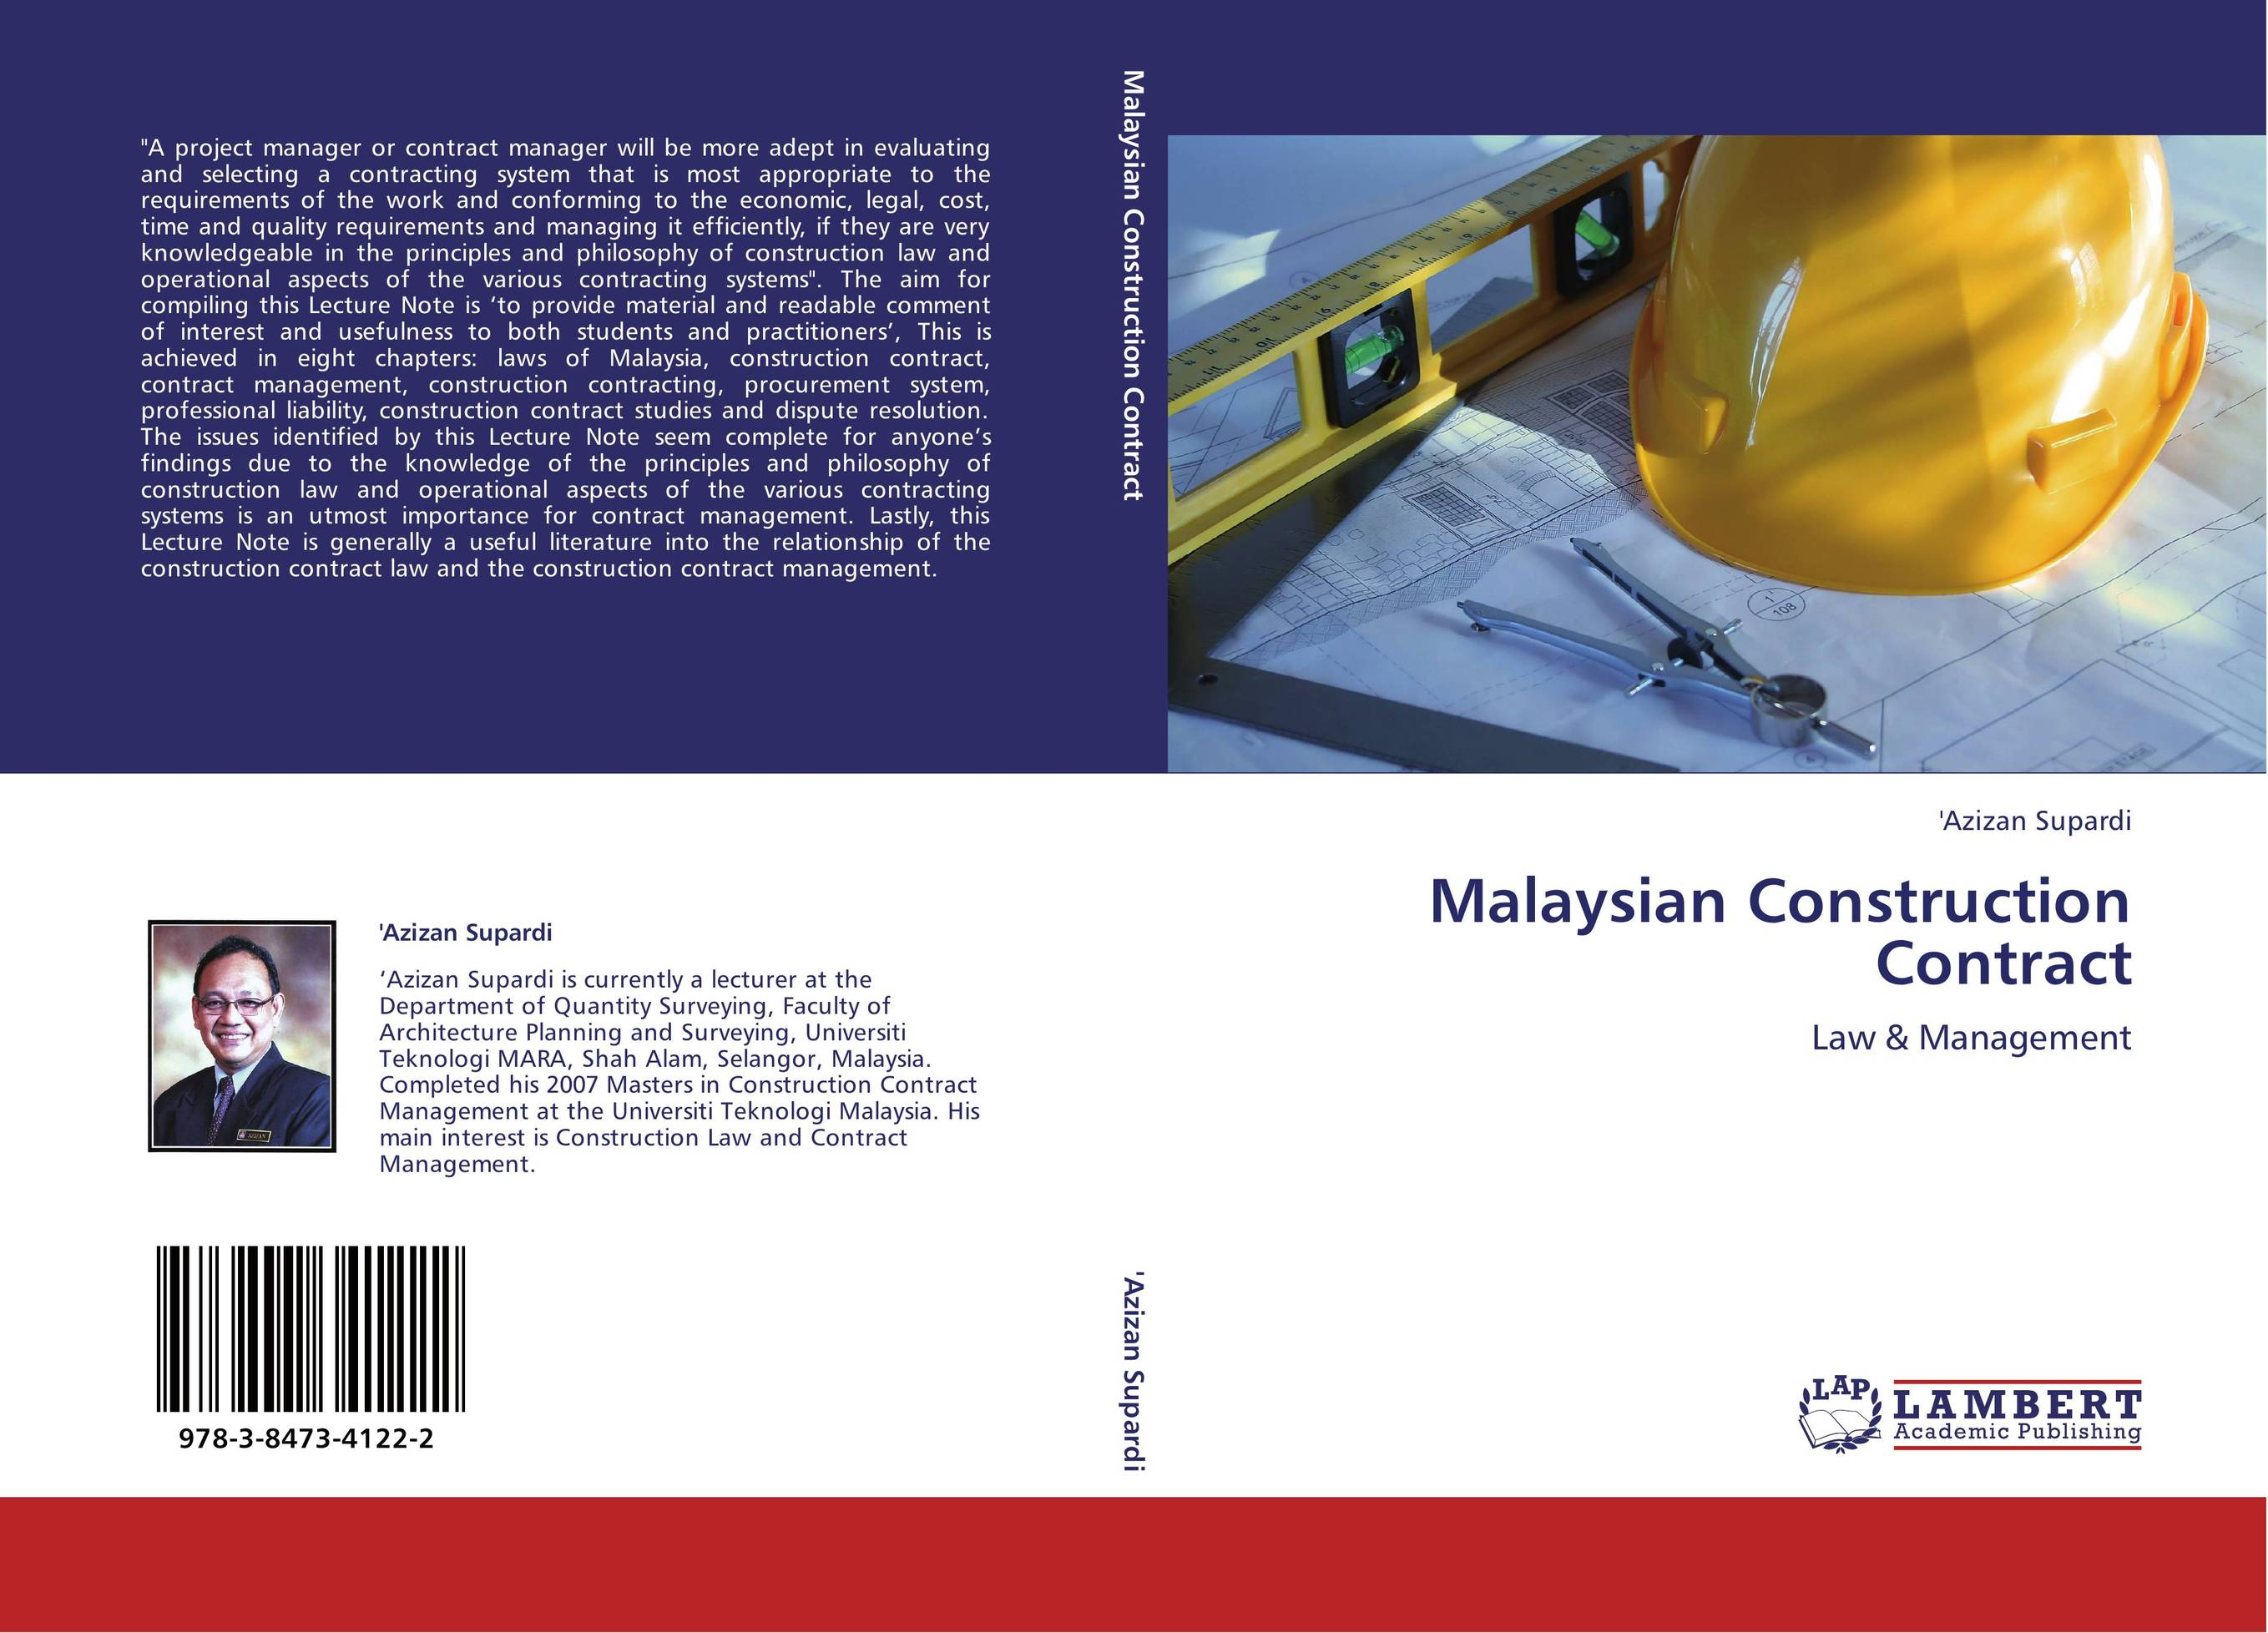 malaysian film industry construct malaysian identity cultural studies essay The complexities of the film industry and film culture in malaysia using cross-cultural analysis approach-  film studies program at the university of newcastle, australia isbn 90-5356-519-1  national identity and national culture 60 malaysian identity 65 pre-colonial malaysia 66 foundational narratives 71.